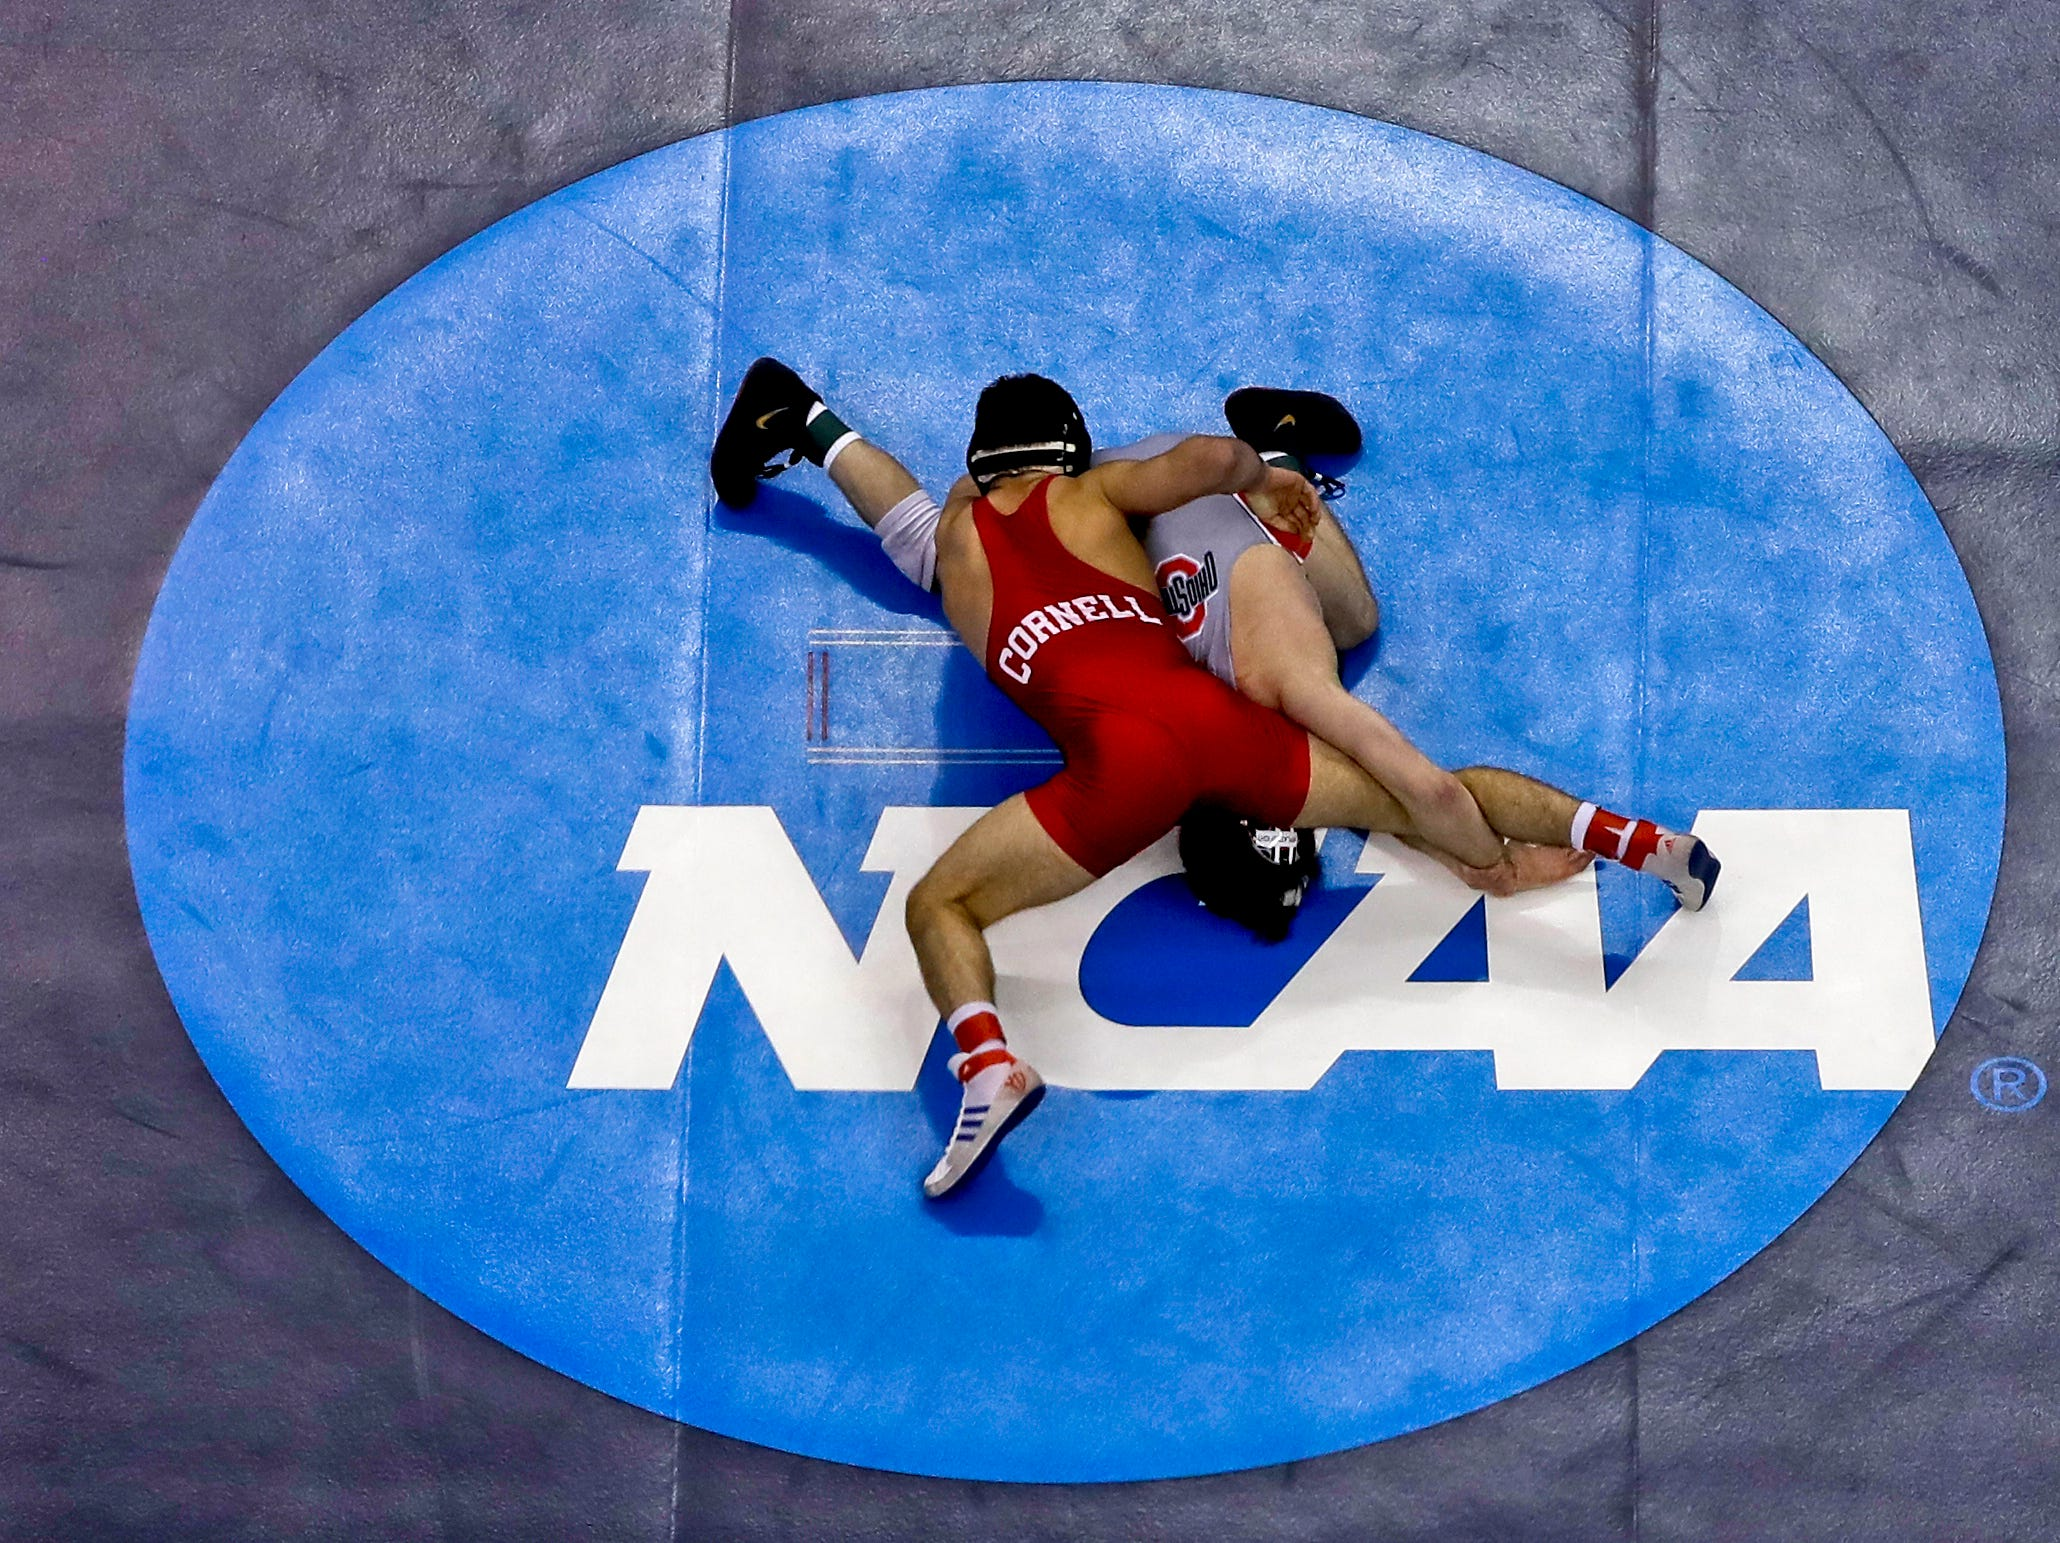 Cornell's Yianni Diakomihalis, top, controls Ohio State's Joey McKenna in their 141-pound match in the finals of the NCAA wrestling championships Saturday, March 23, 2019 in Pittsburgh. Diakomihalis won the match.